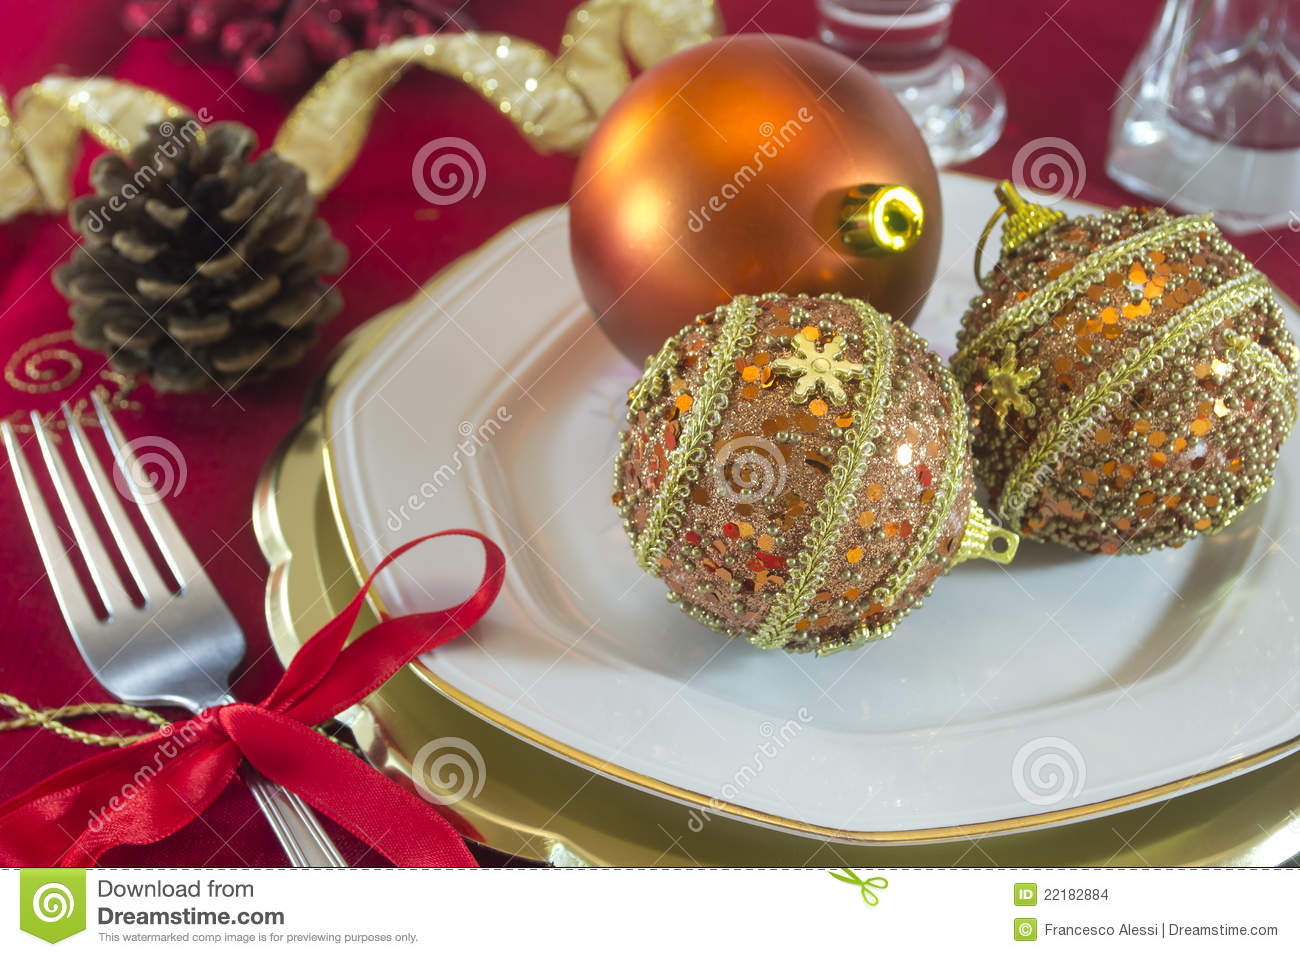 Christmas table decorations - Christmas Table Decorations